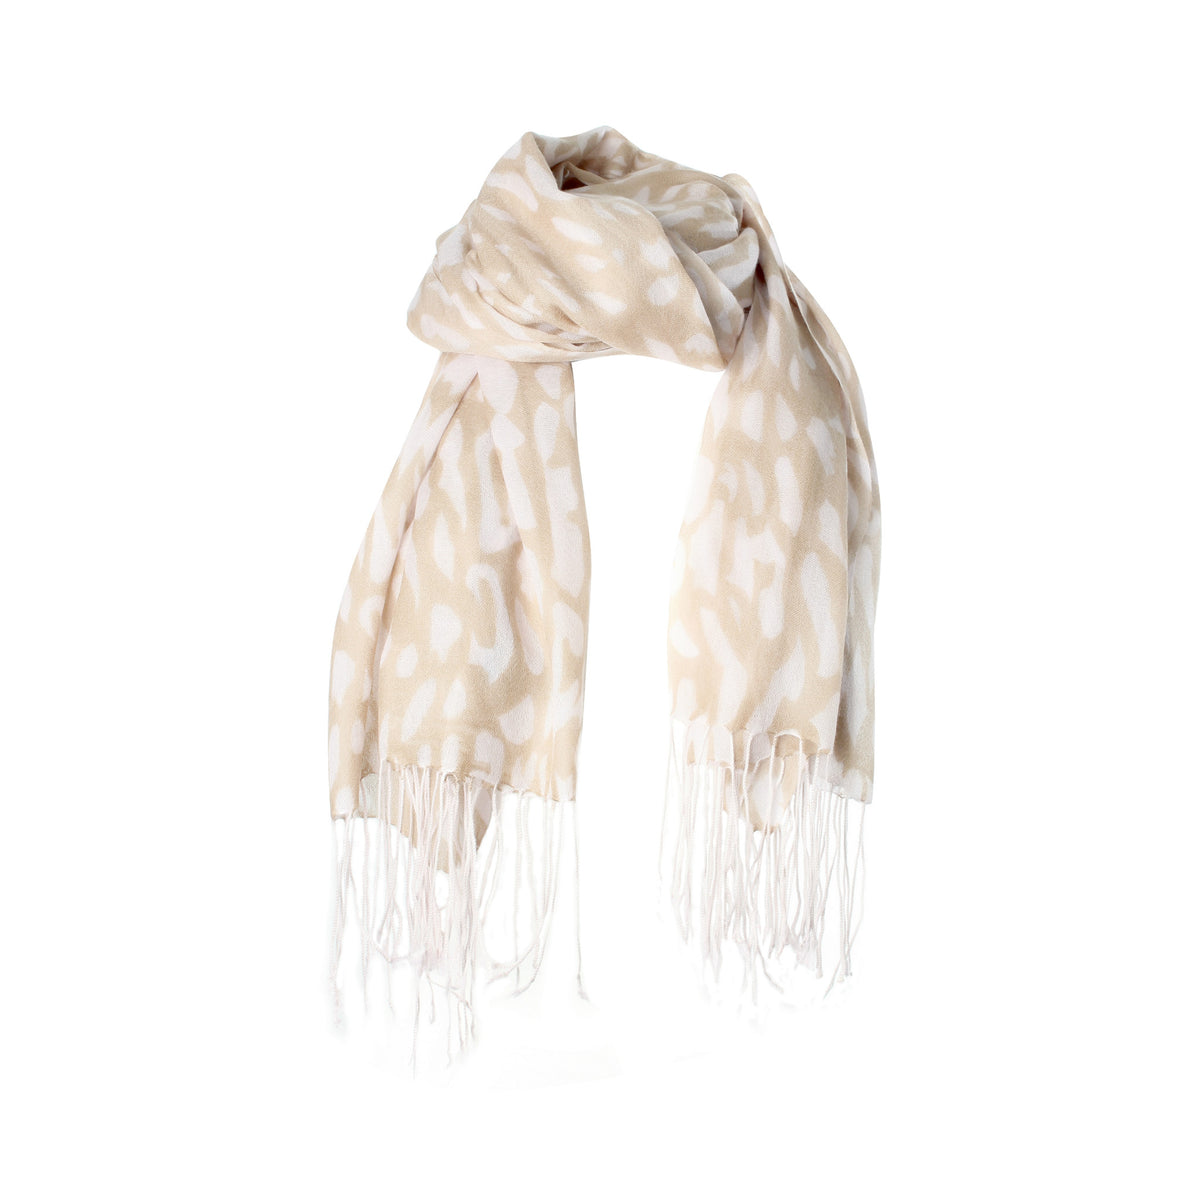 Lightweight Cashmere Stole | Large Cashmere Scarf | Champagne Pink Leopard Print | buy now at The Cashmere Choice London